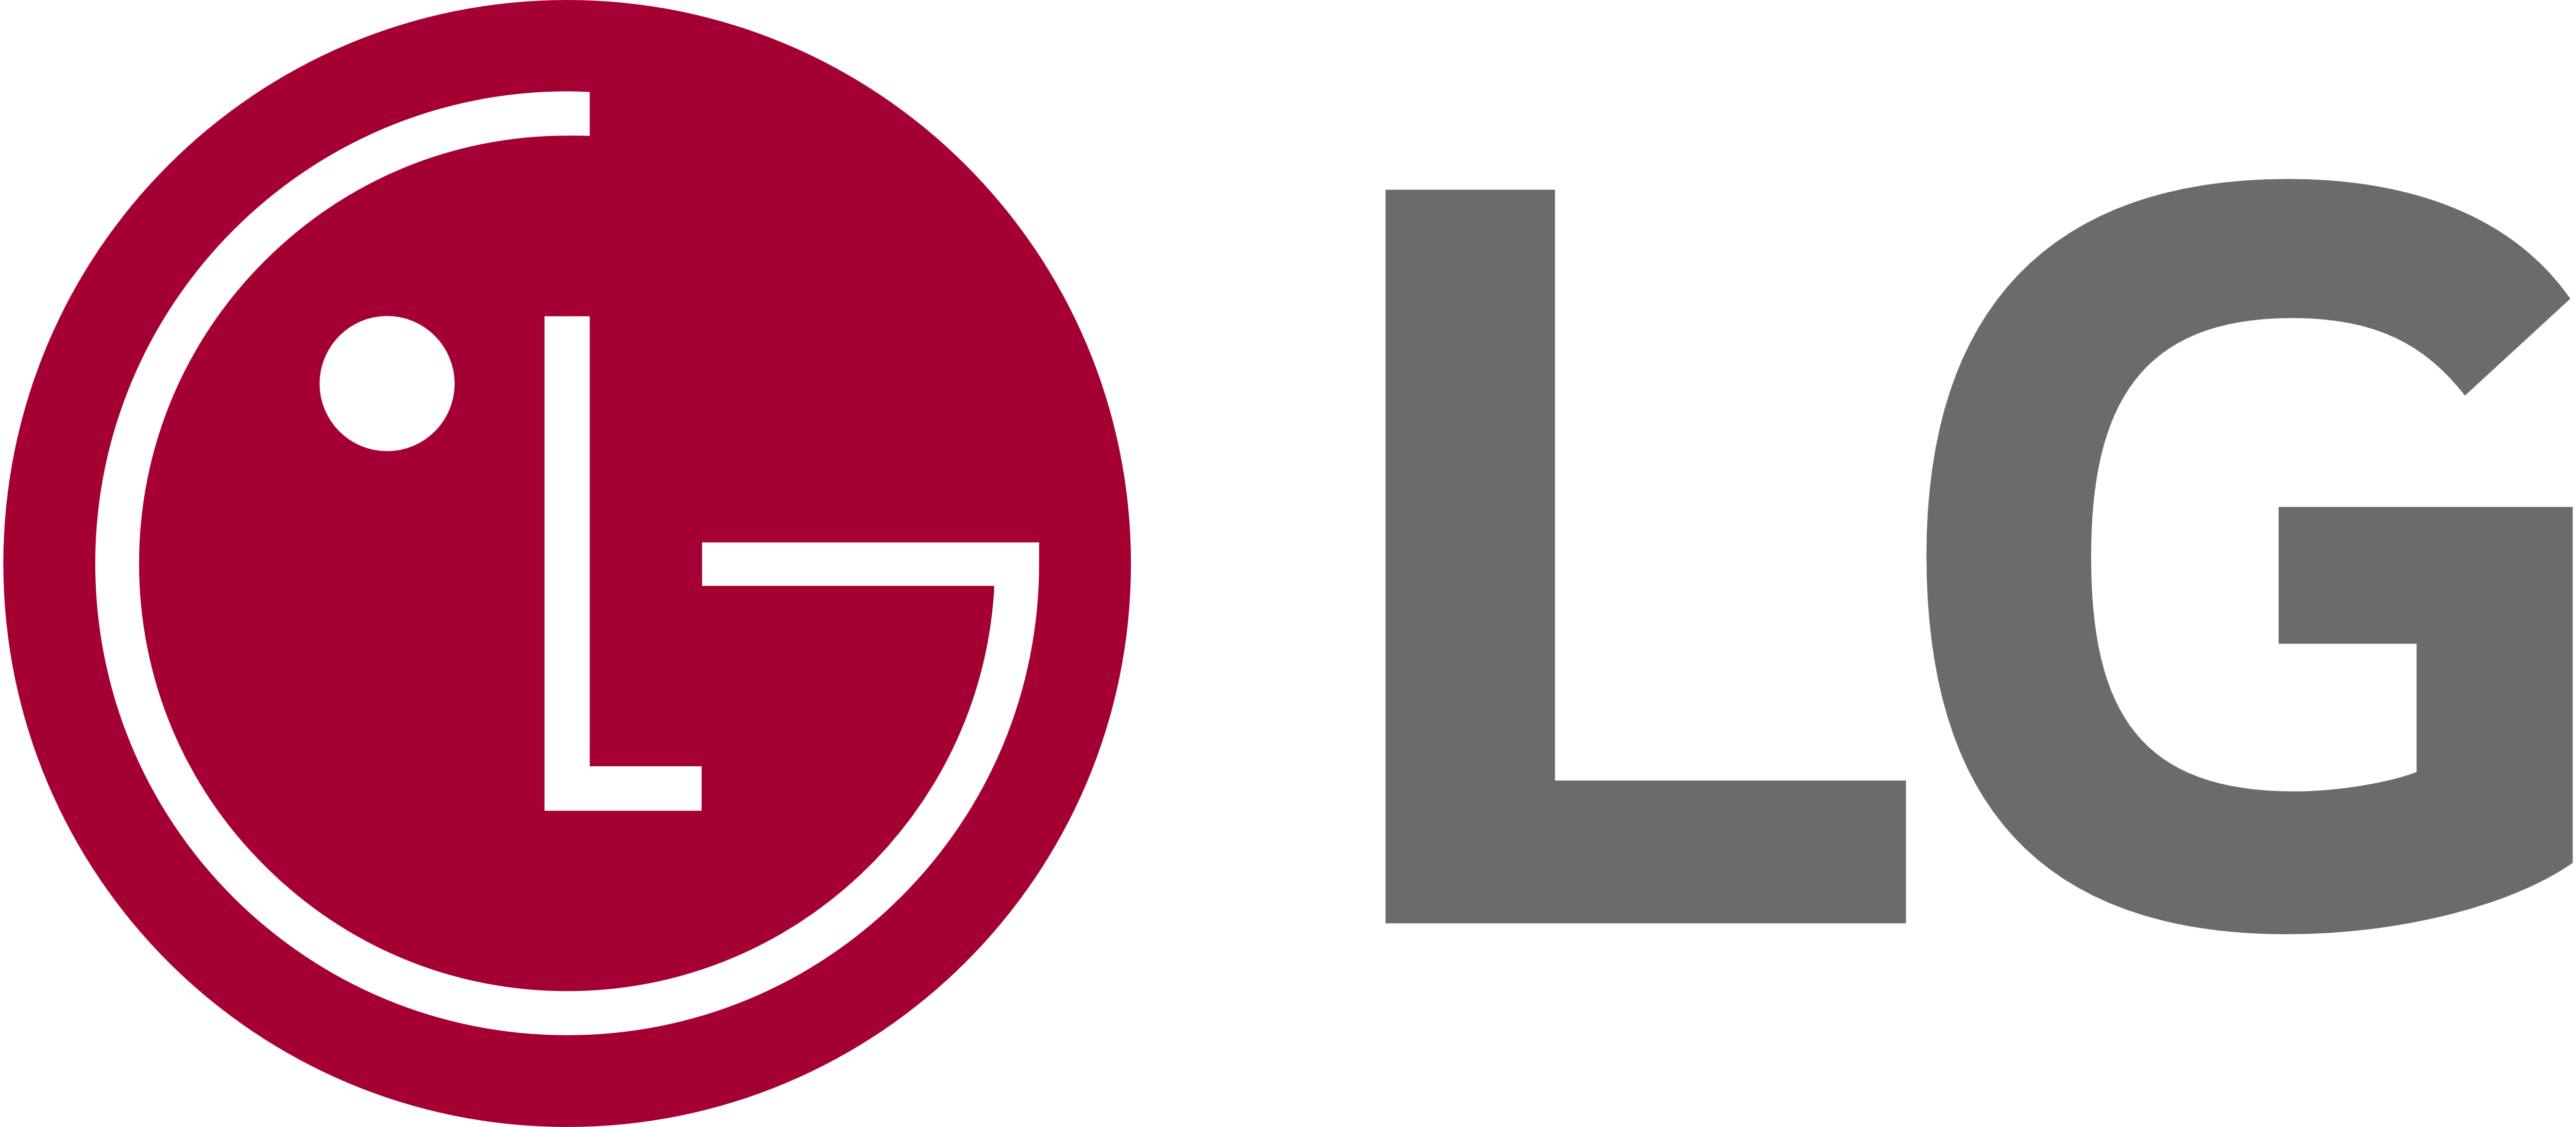 LG Fridge Maintenance, Maytag Fridge Service Near Me